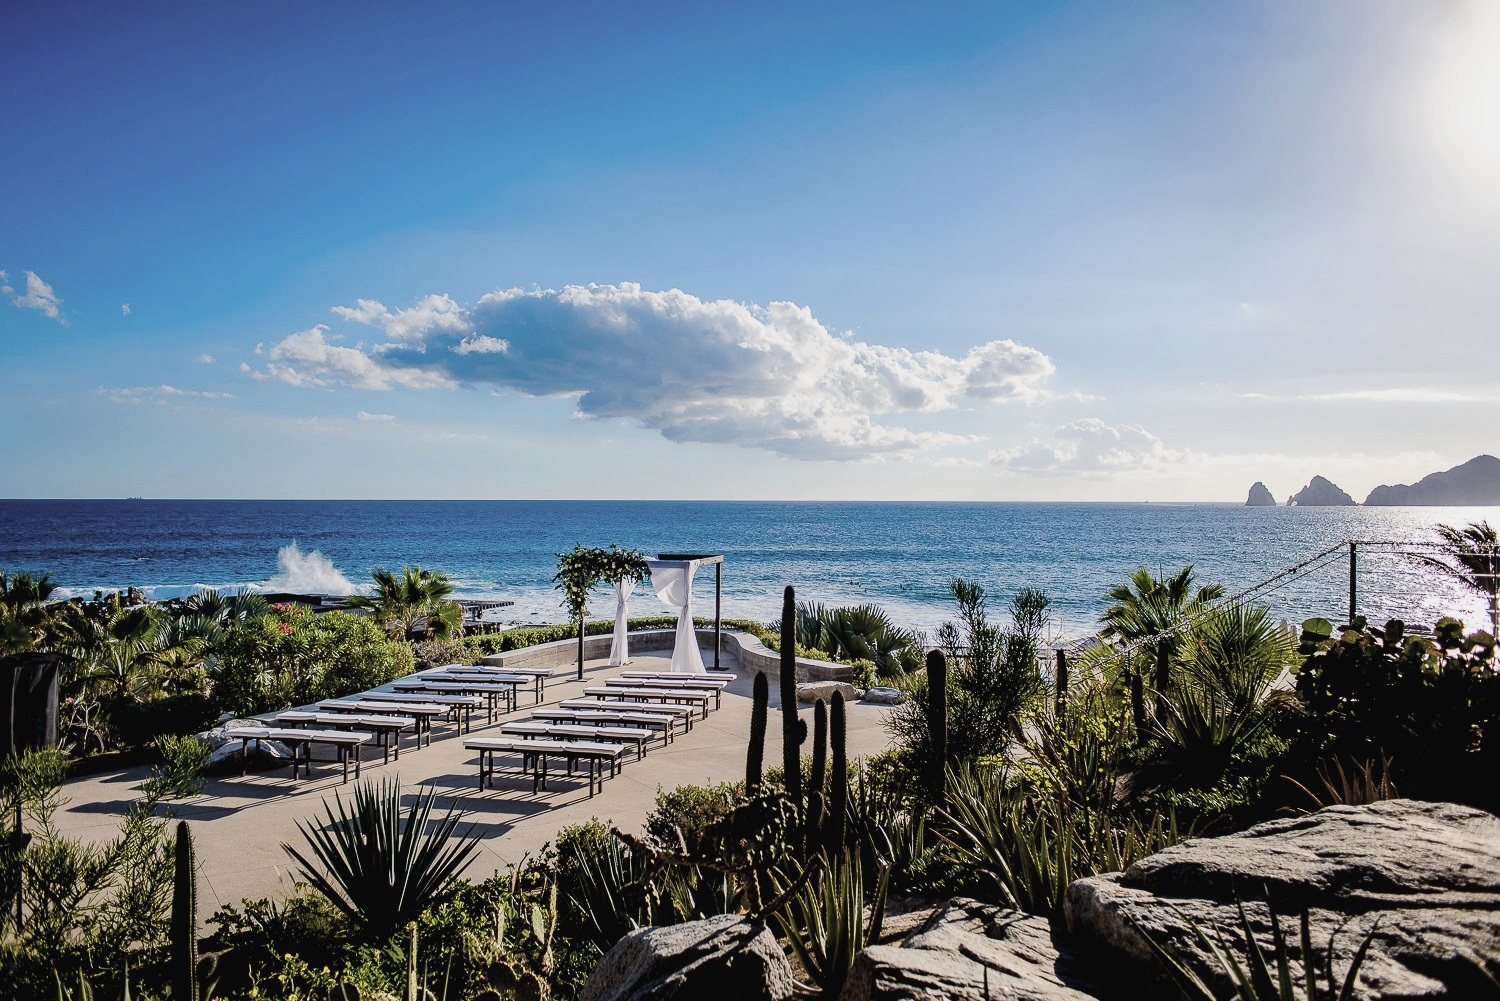 Simple wooden ceremony canopy. Framed by soft gauzy drapes billowing in the breeze and a romantic display of lush white garden roses. Simple adornment for an already spectacular setting! Low upholstered wooden benches keep the Ocean view and the Arch Rock formation uninterrupted.